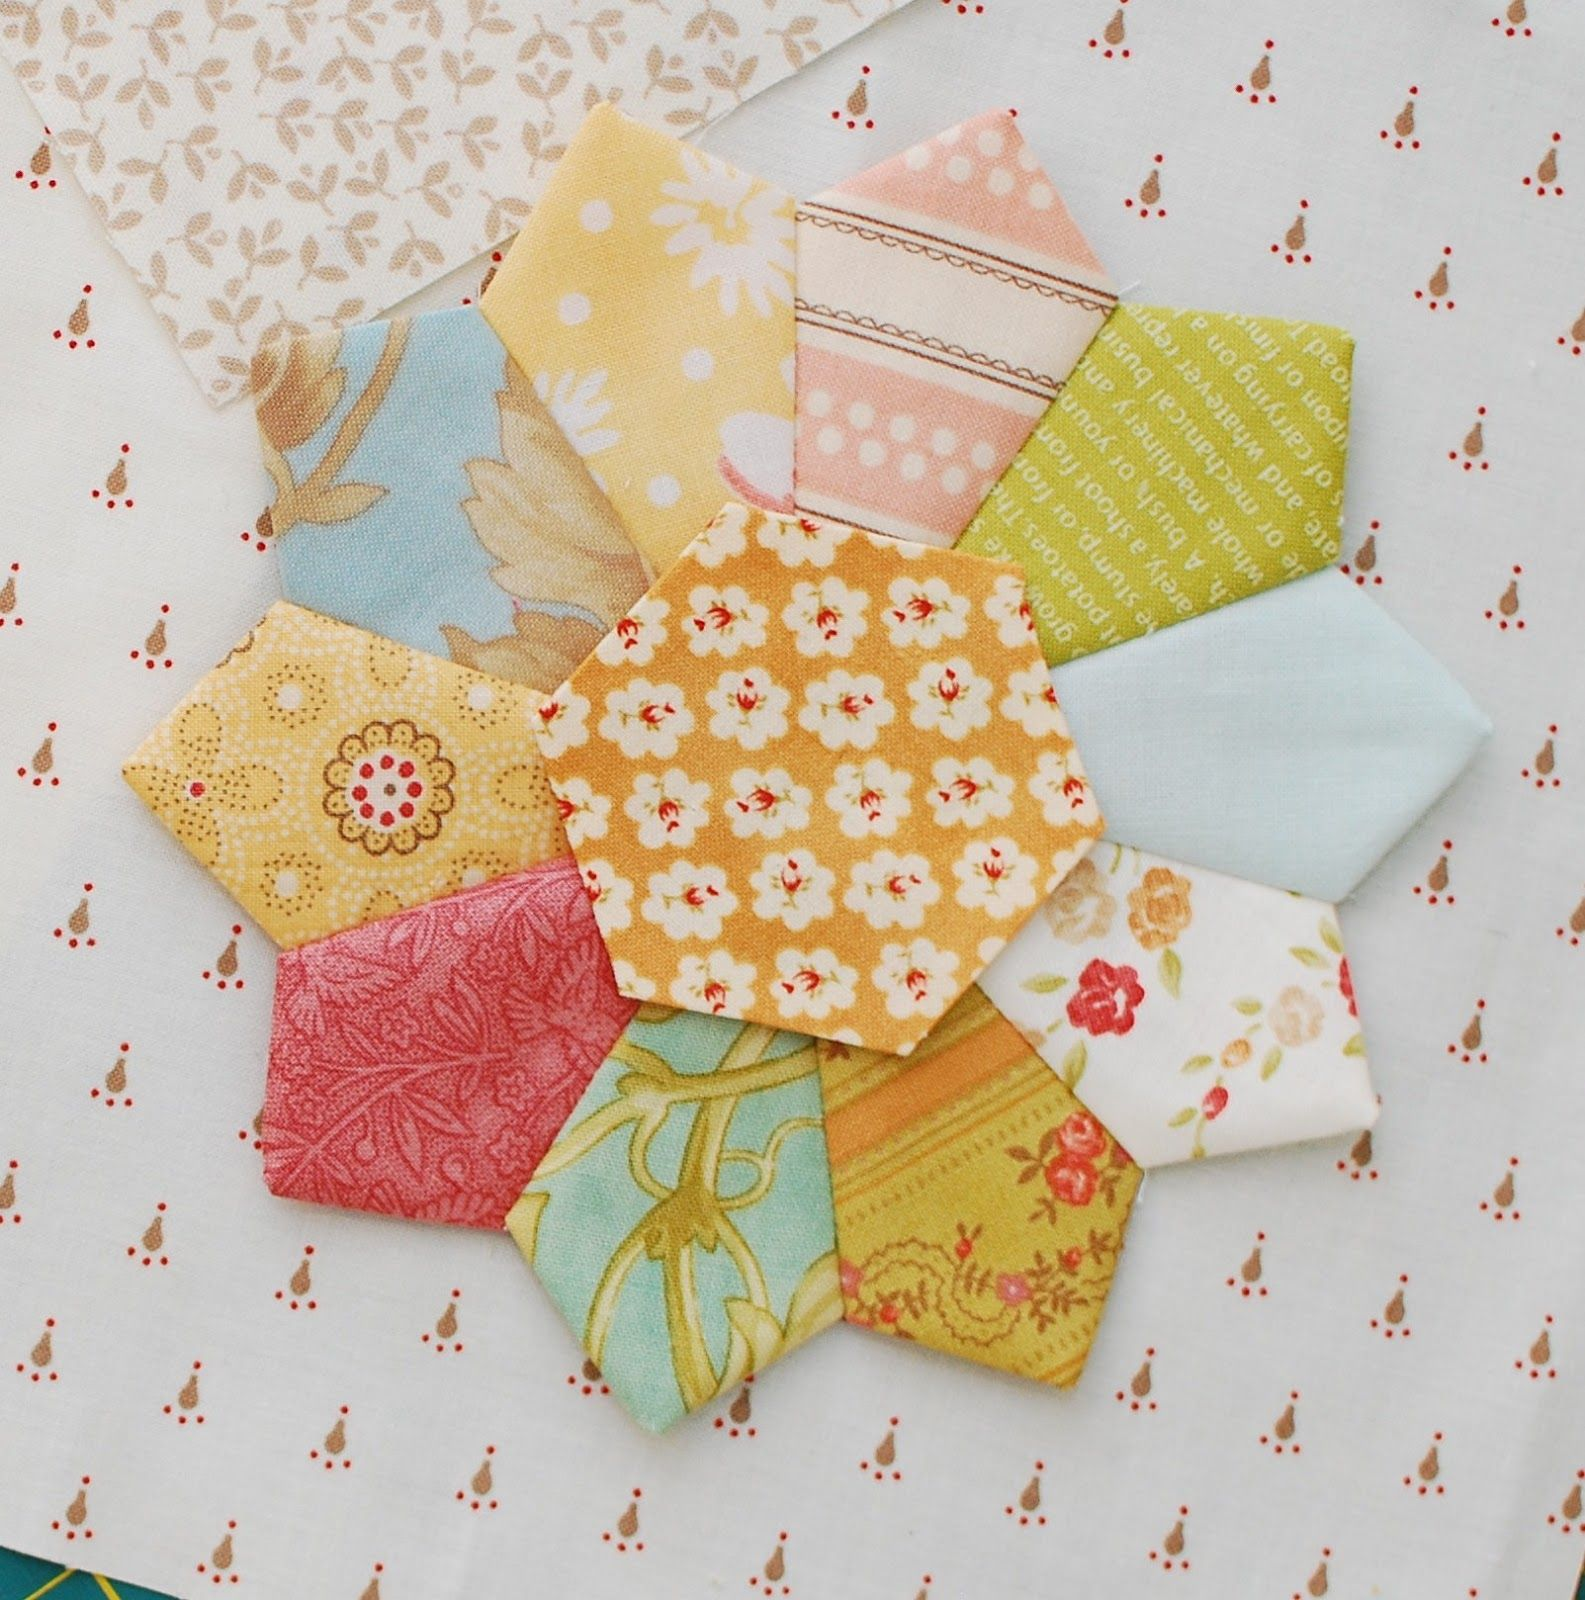 I thought I would show you some of the scrappy Sunnyside Up  blocks that I've been working on. This is such afun Dresden Plate block to...